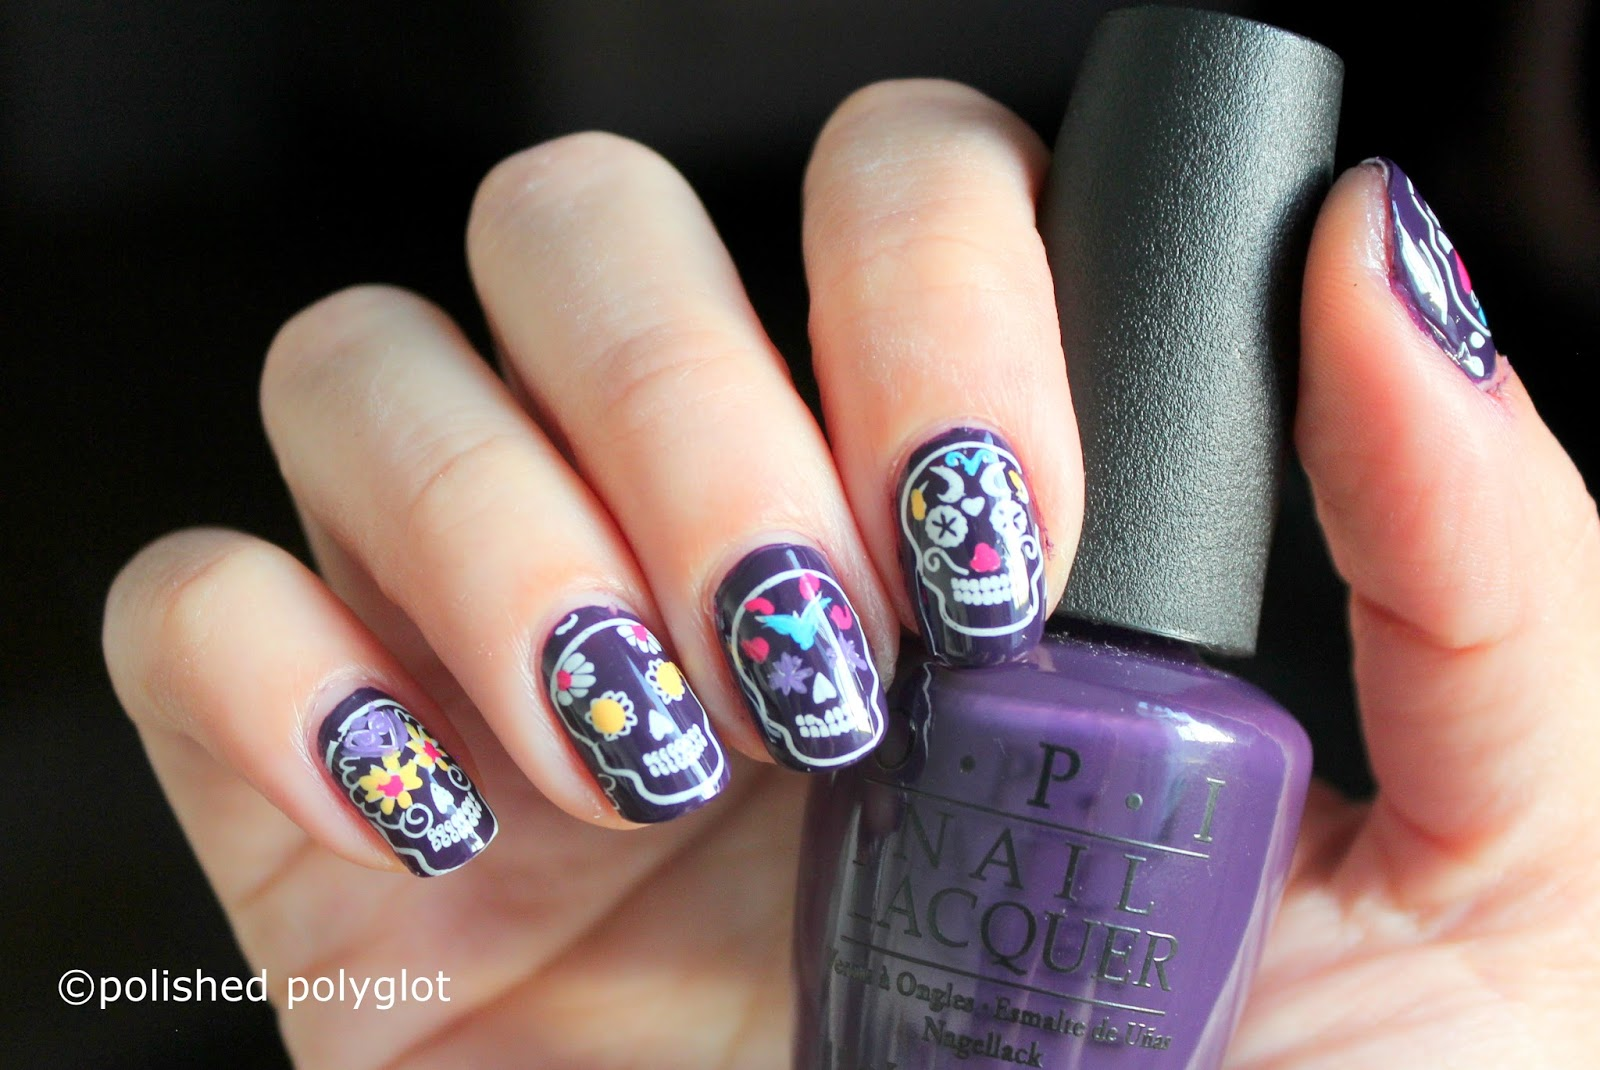 Nail art manicure with sugar skulls nail crazies unite nail art manicure with sugar skulls nail crazies unite prinsesfo Image collections